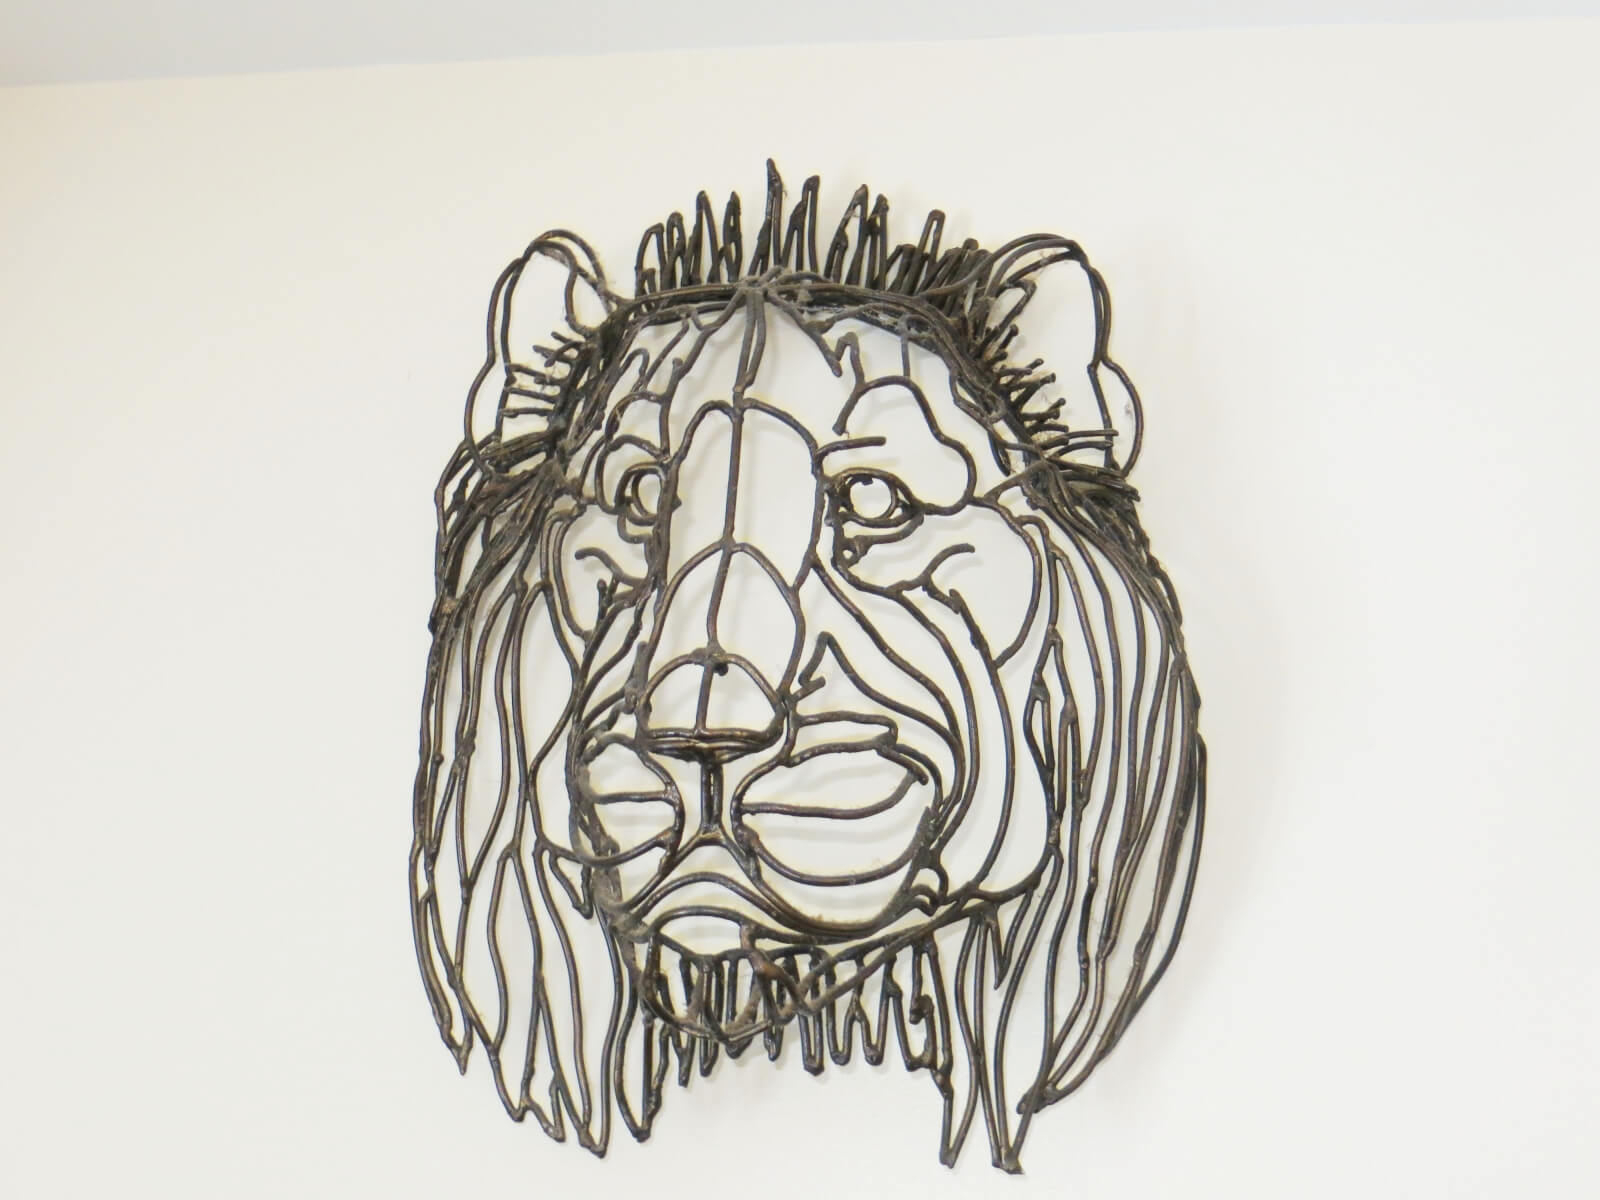 Peter's Metal Lion Head art piece hanging on a wall